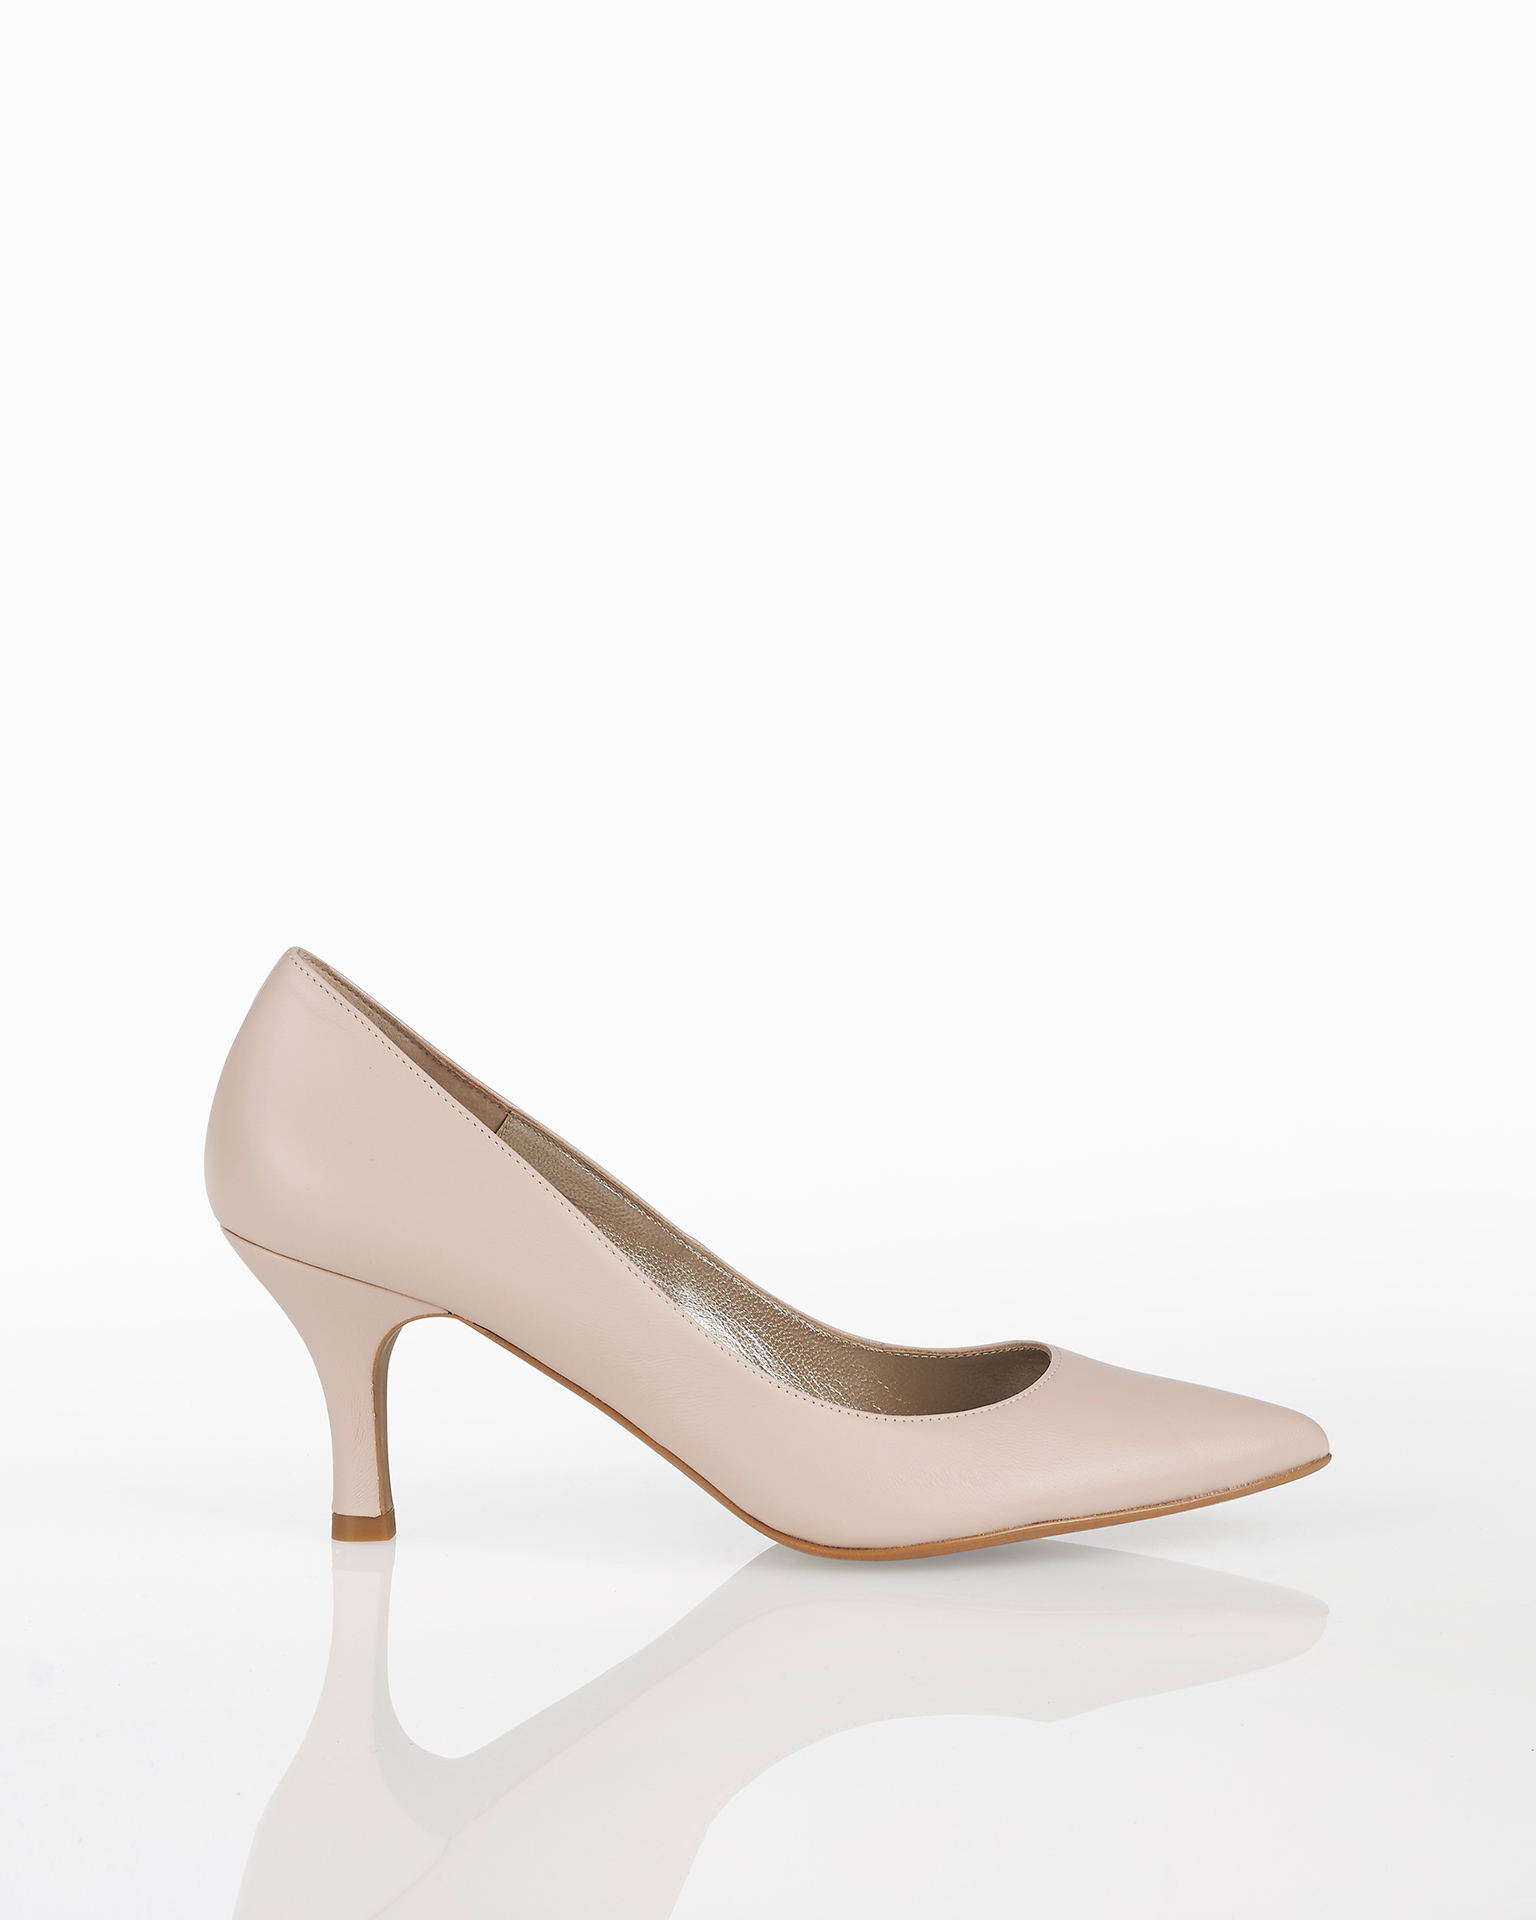 Leather bridal court shoes with low heel, available in natural, nude, gold and silver. 2018 AIRE BARCELONA Collection.